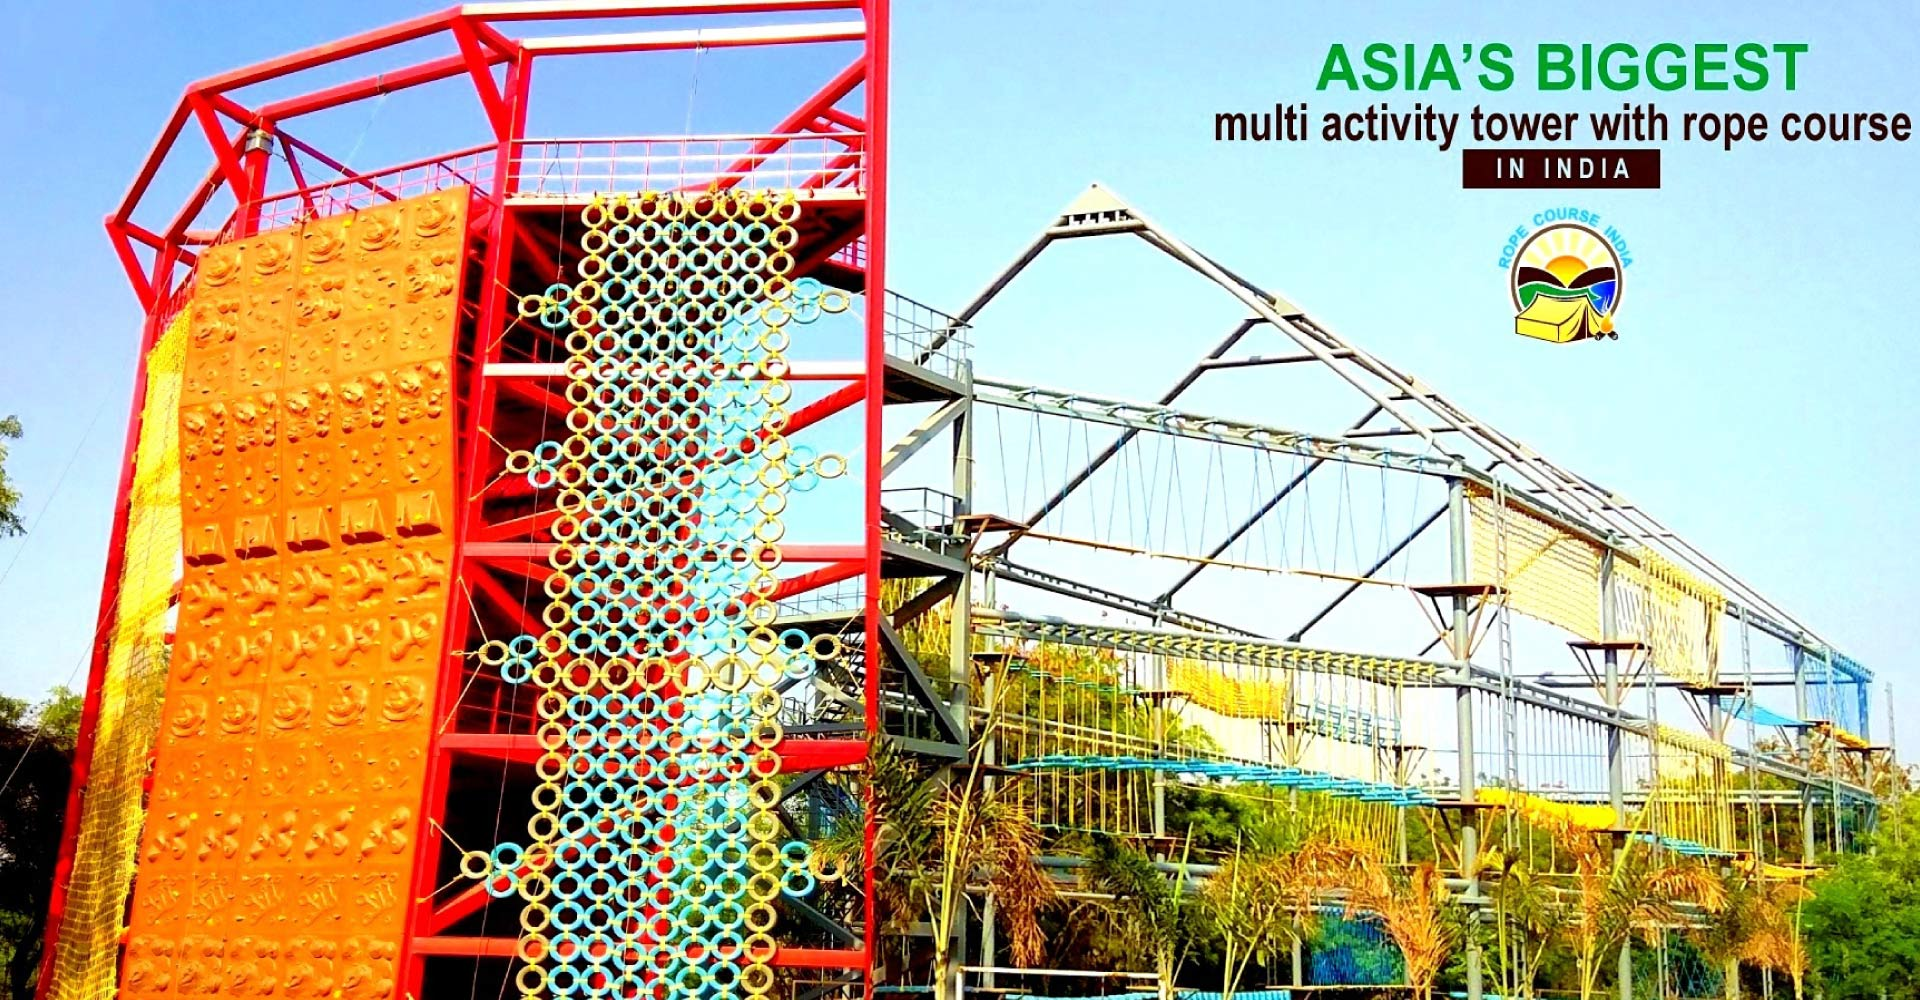 Rope course Construction In India